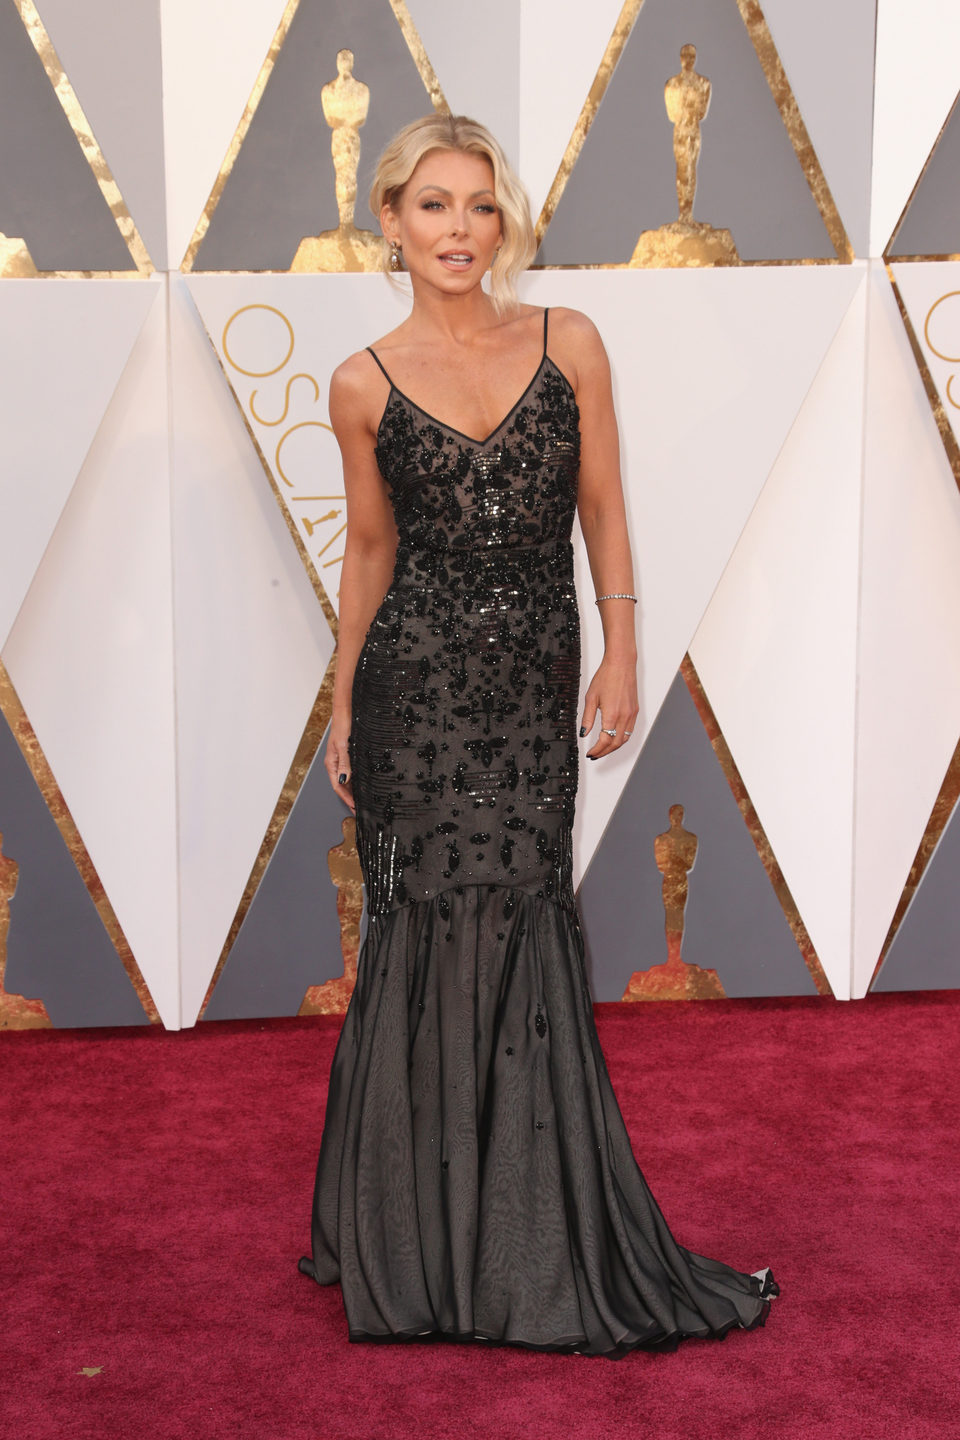 Kelly Ripa at the Oscars 2016 red carpet